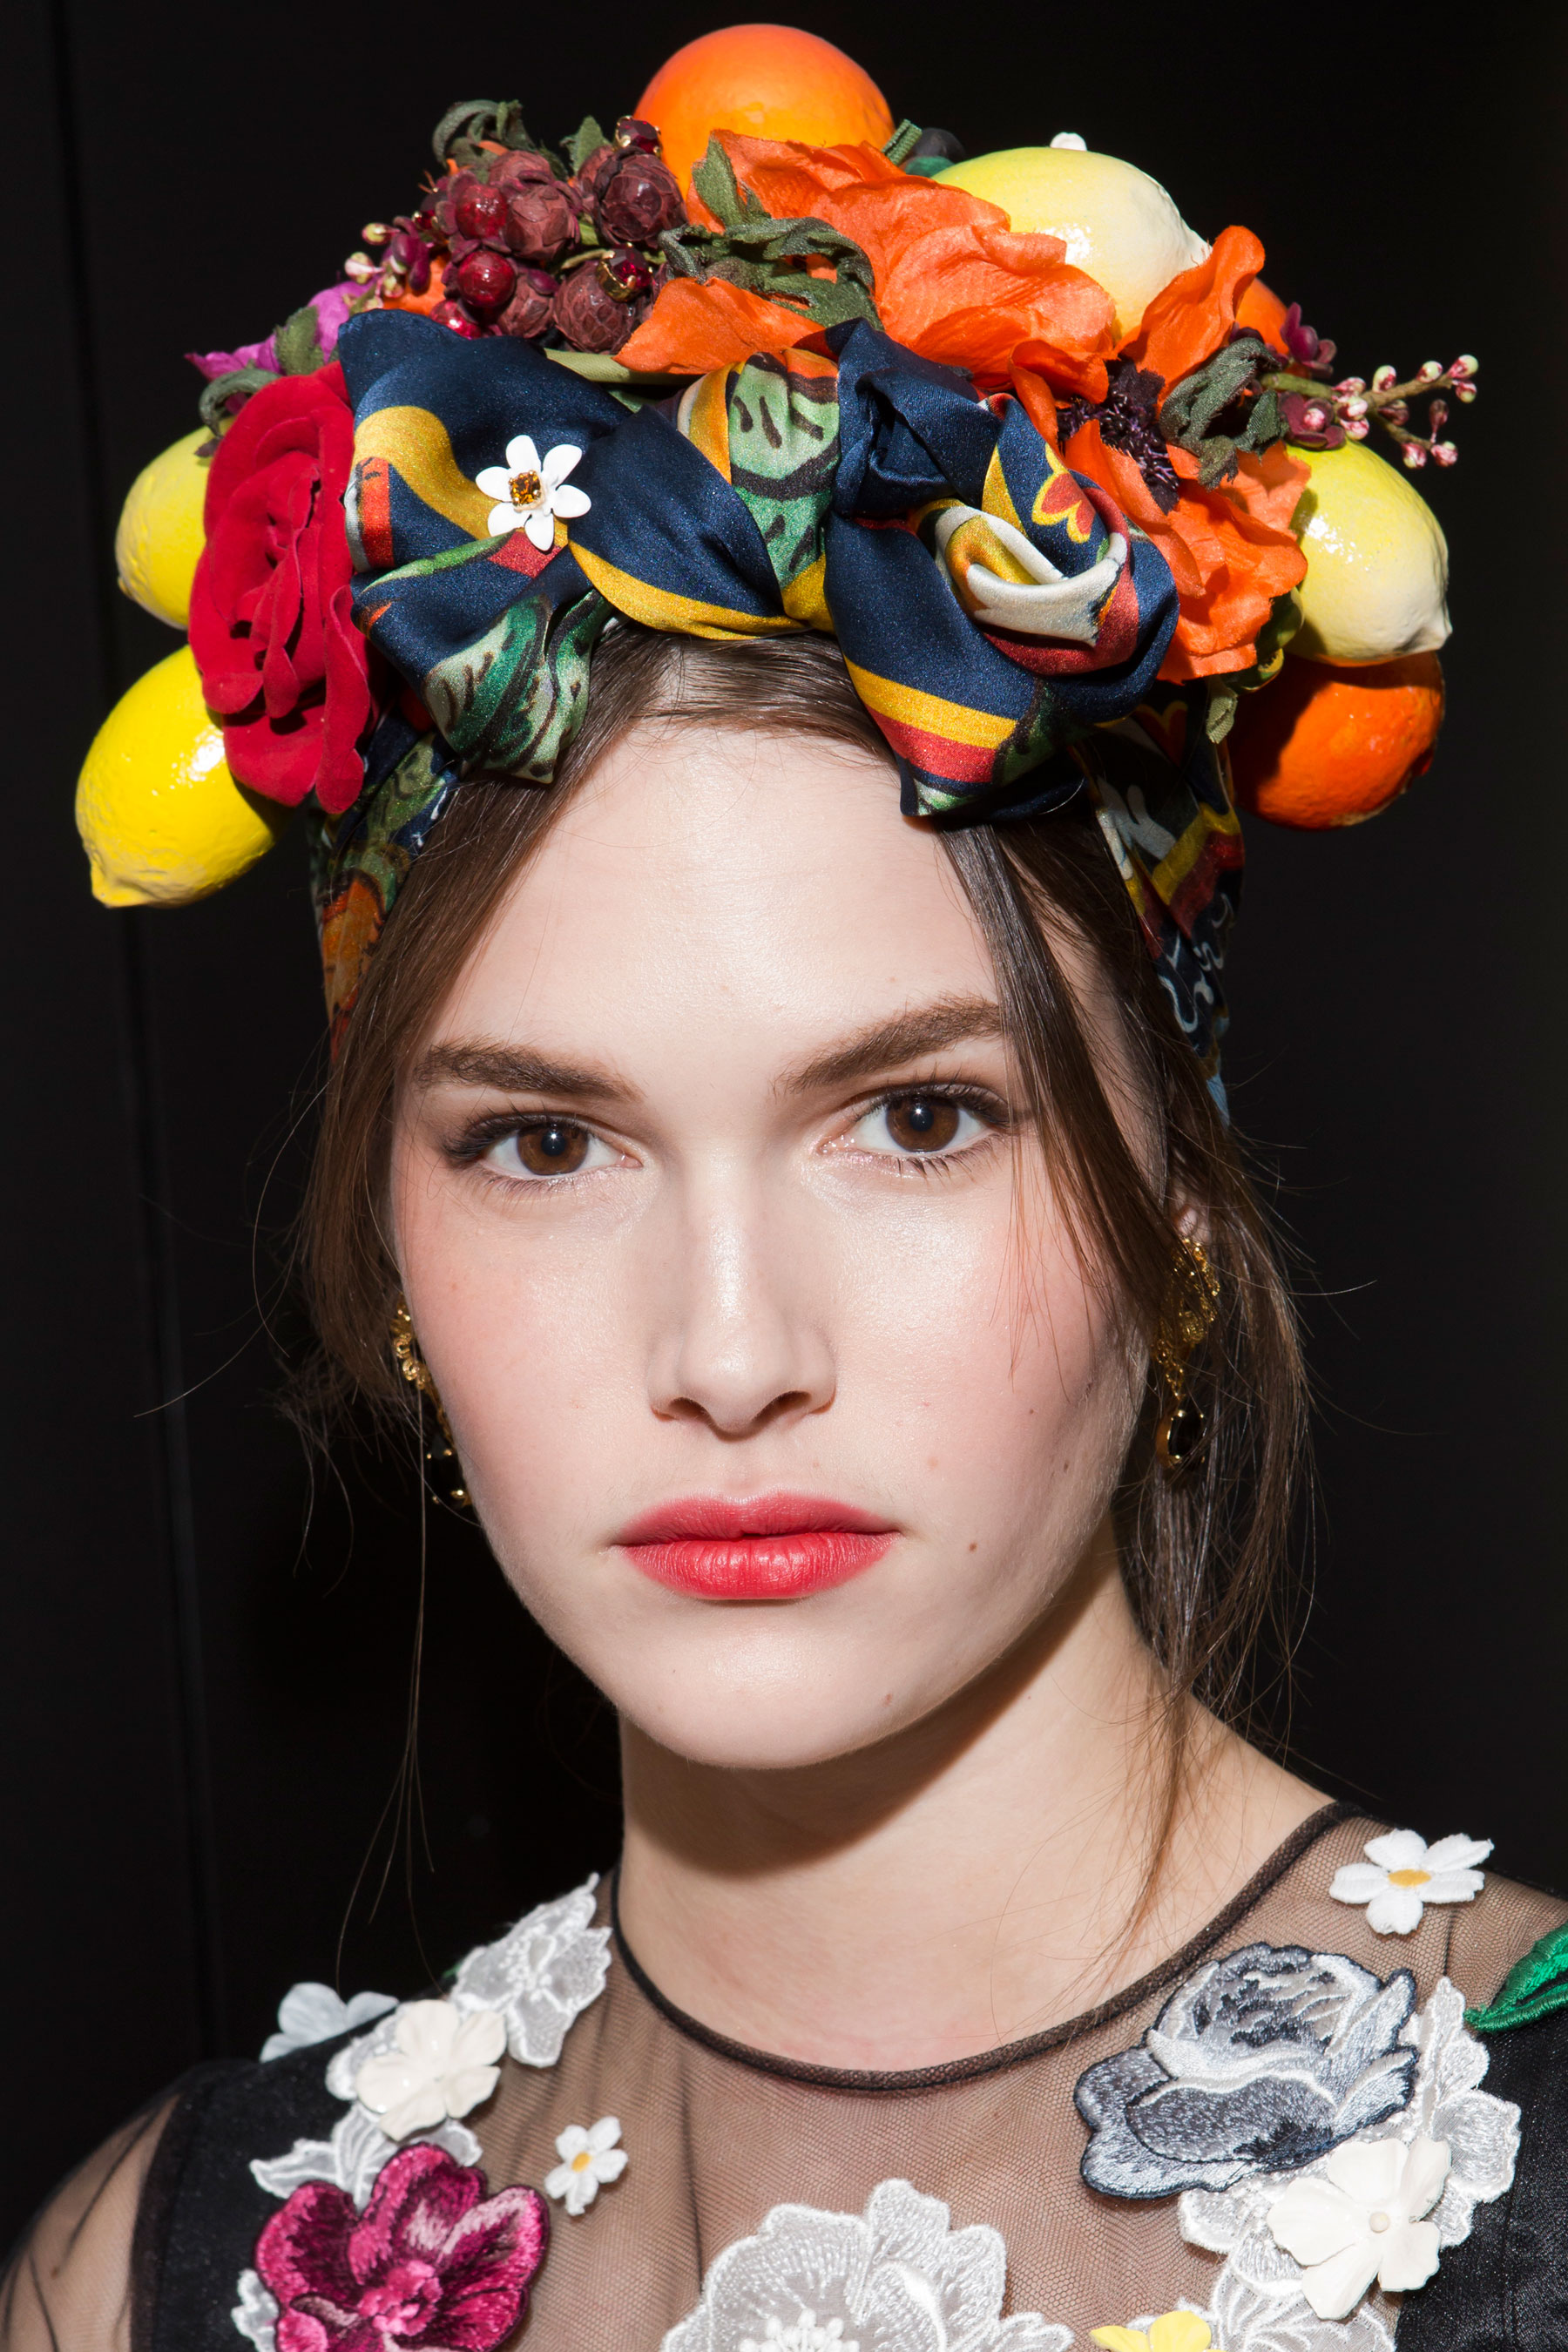 Dolce-and-Gabanna-backstage-beauty-spring-2016-fashion-show-the-impression-111